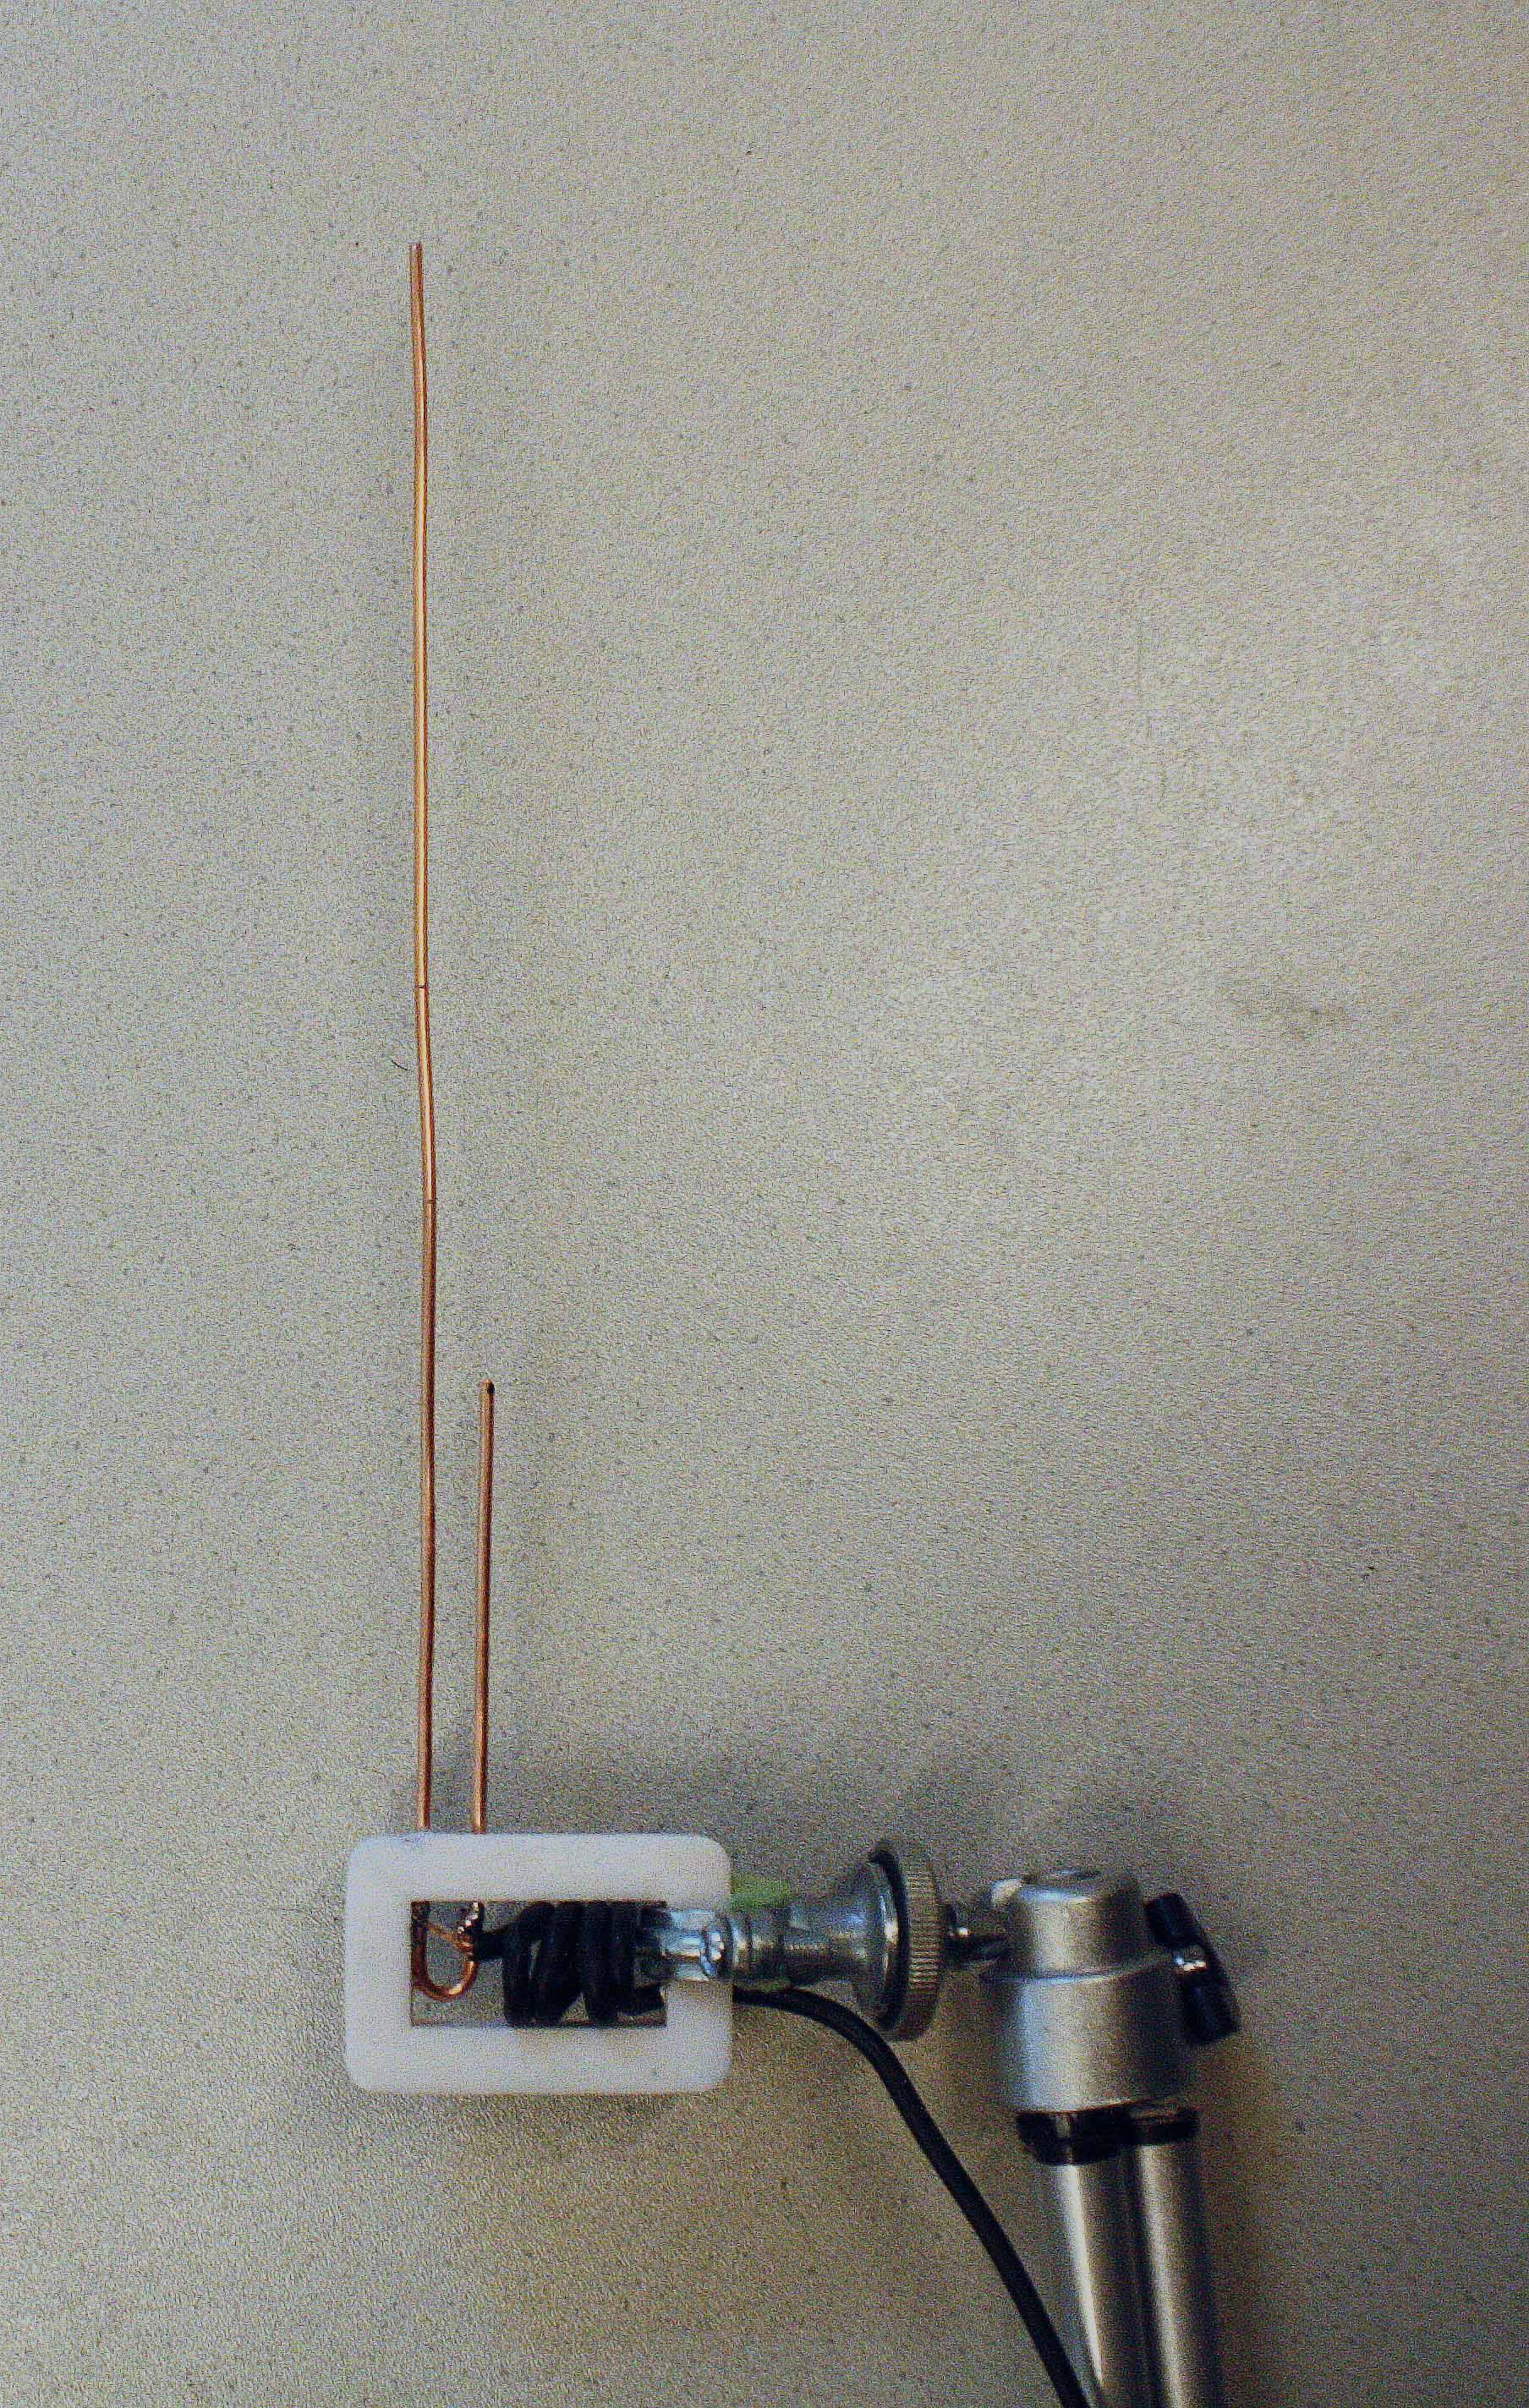 J-Pole antenna for 1090 MHz